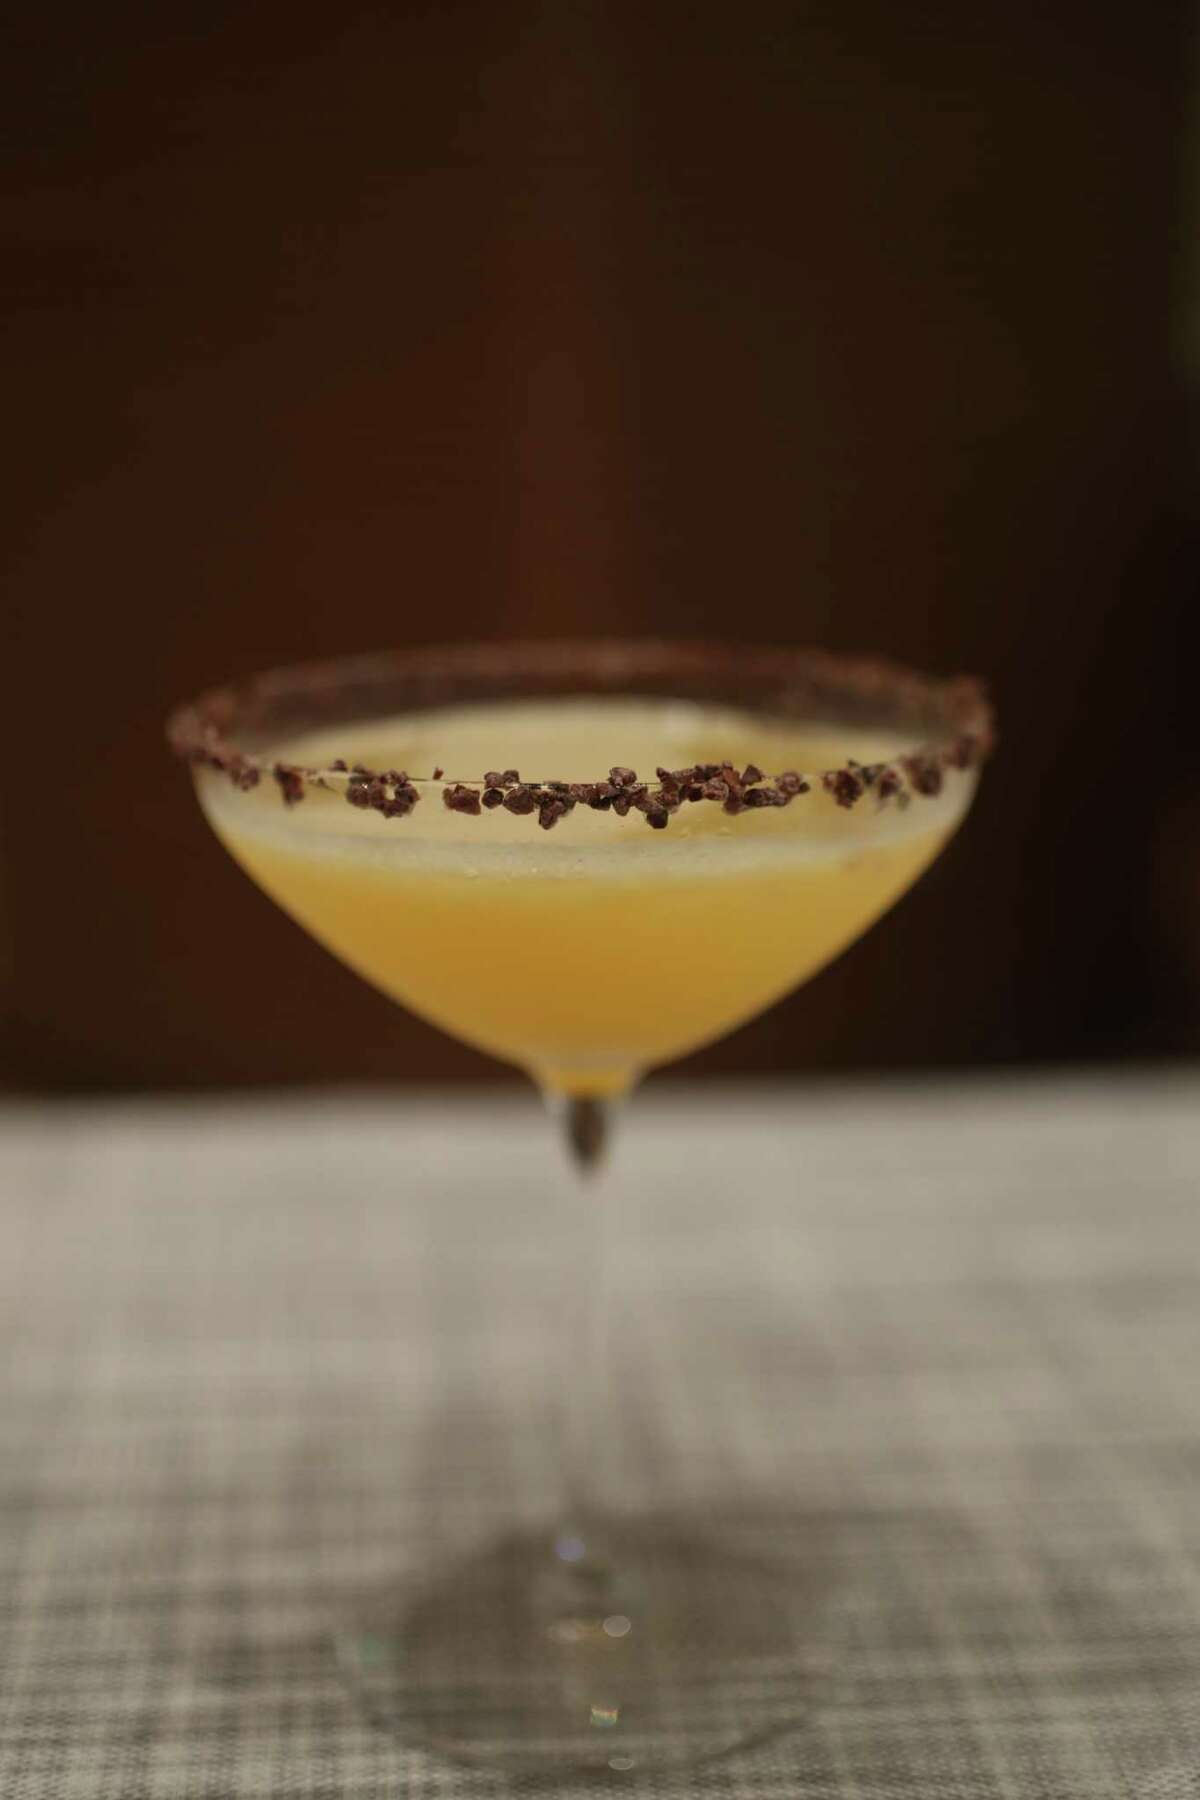 Late Checkout, a cocktail made with mezcal, wood-aged gin, orange liqueur, and passion fruit juice in a martini glass rimmed with Oaxacan chocolate at Xochi at Marriot Marquis Houston.